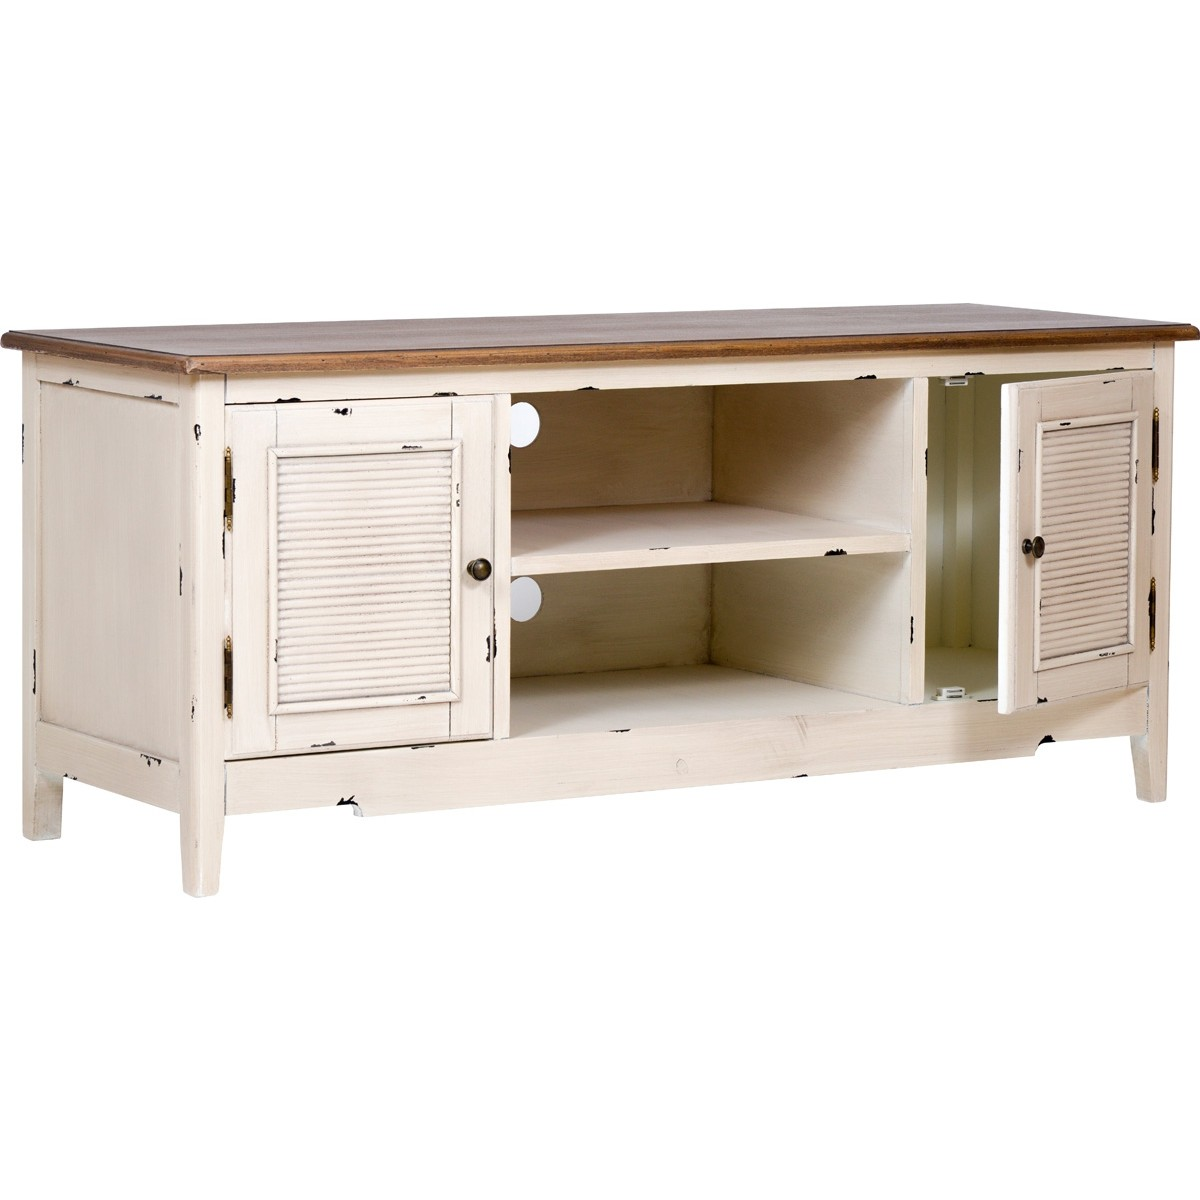 credenza stile country - 28 images - credenza country in legno 2 ...